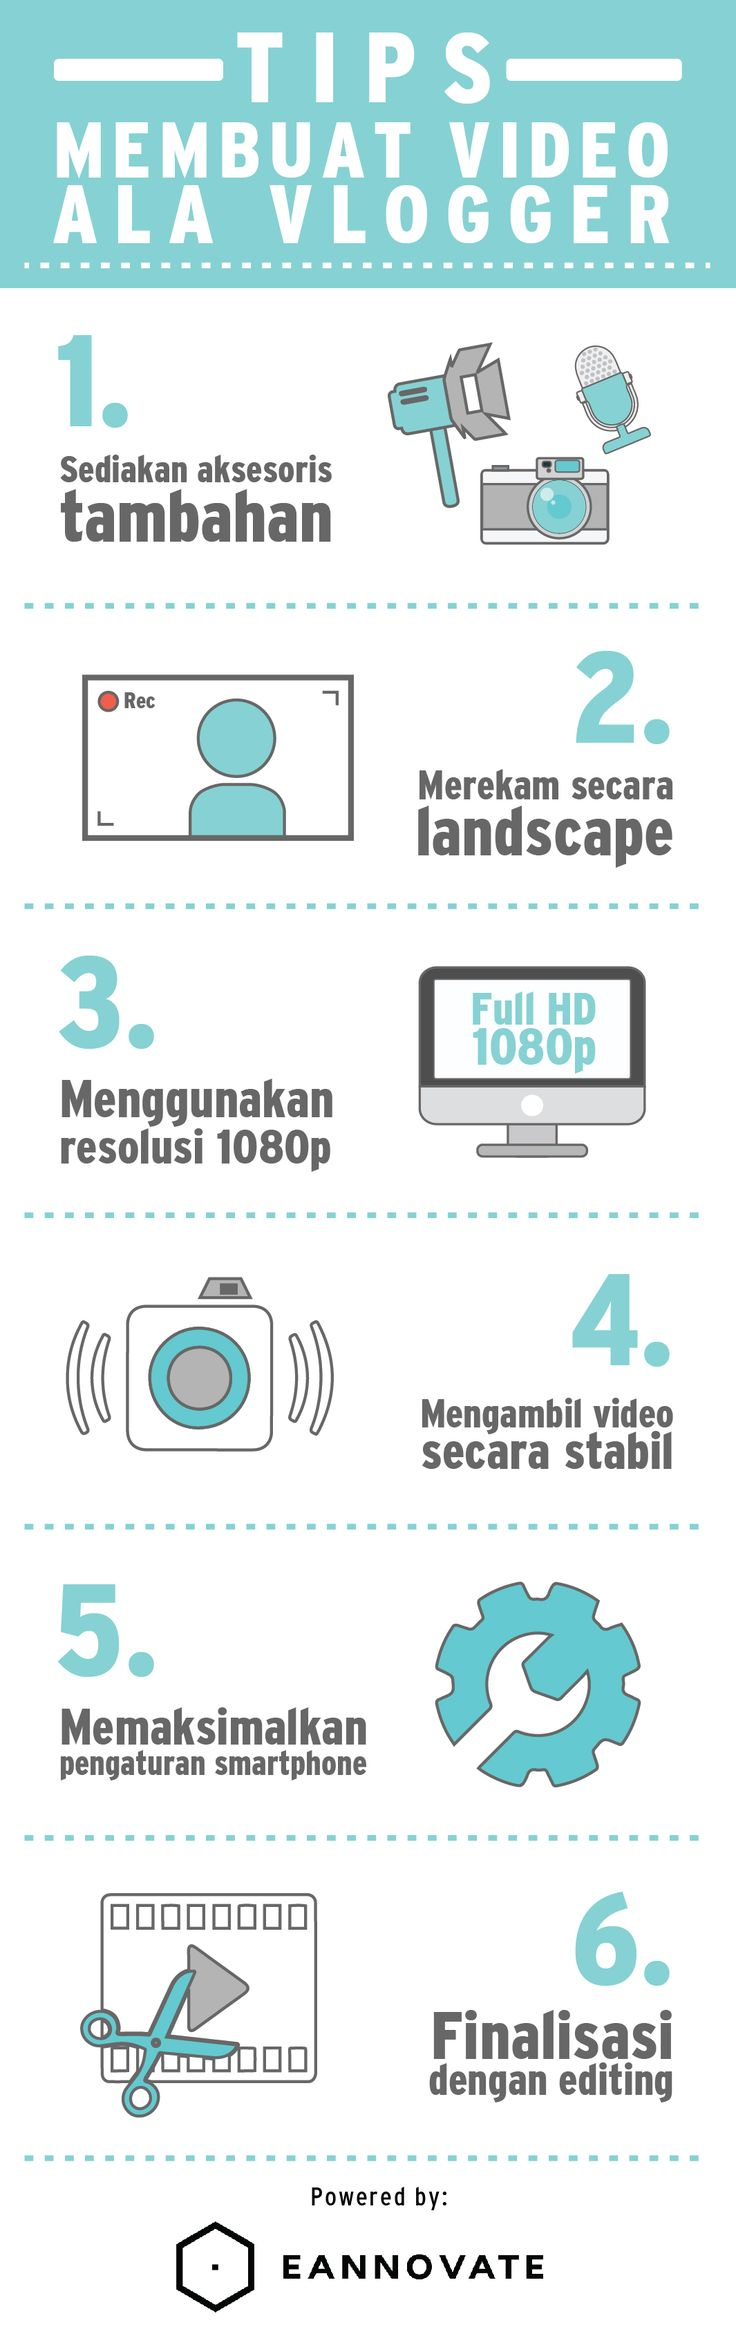 Tips Membuat Video ala Vlogger/ Youtuber Menggunakan Smartphone (Infographic)